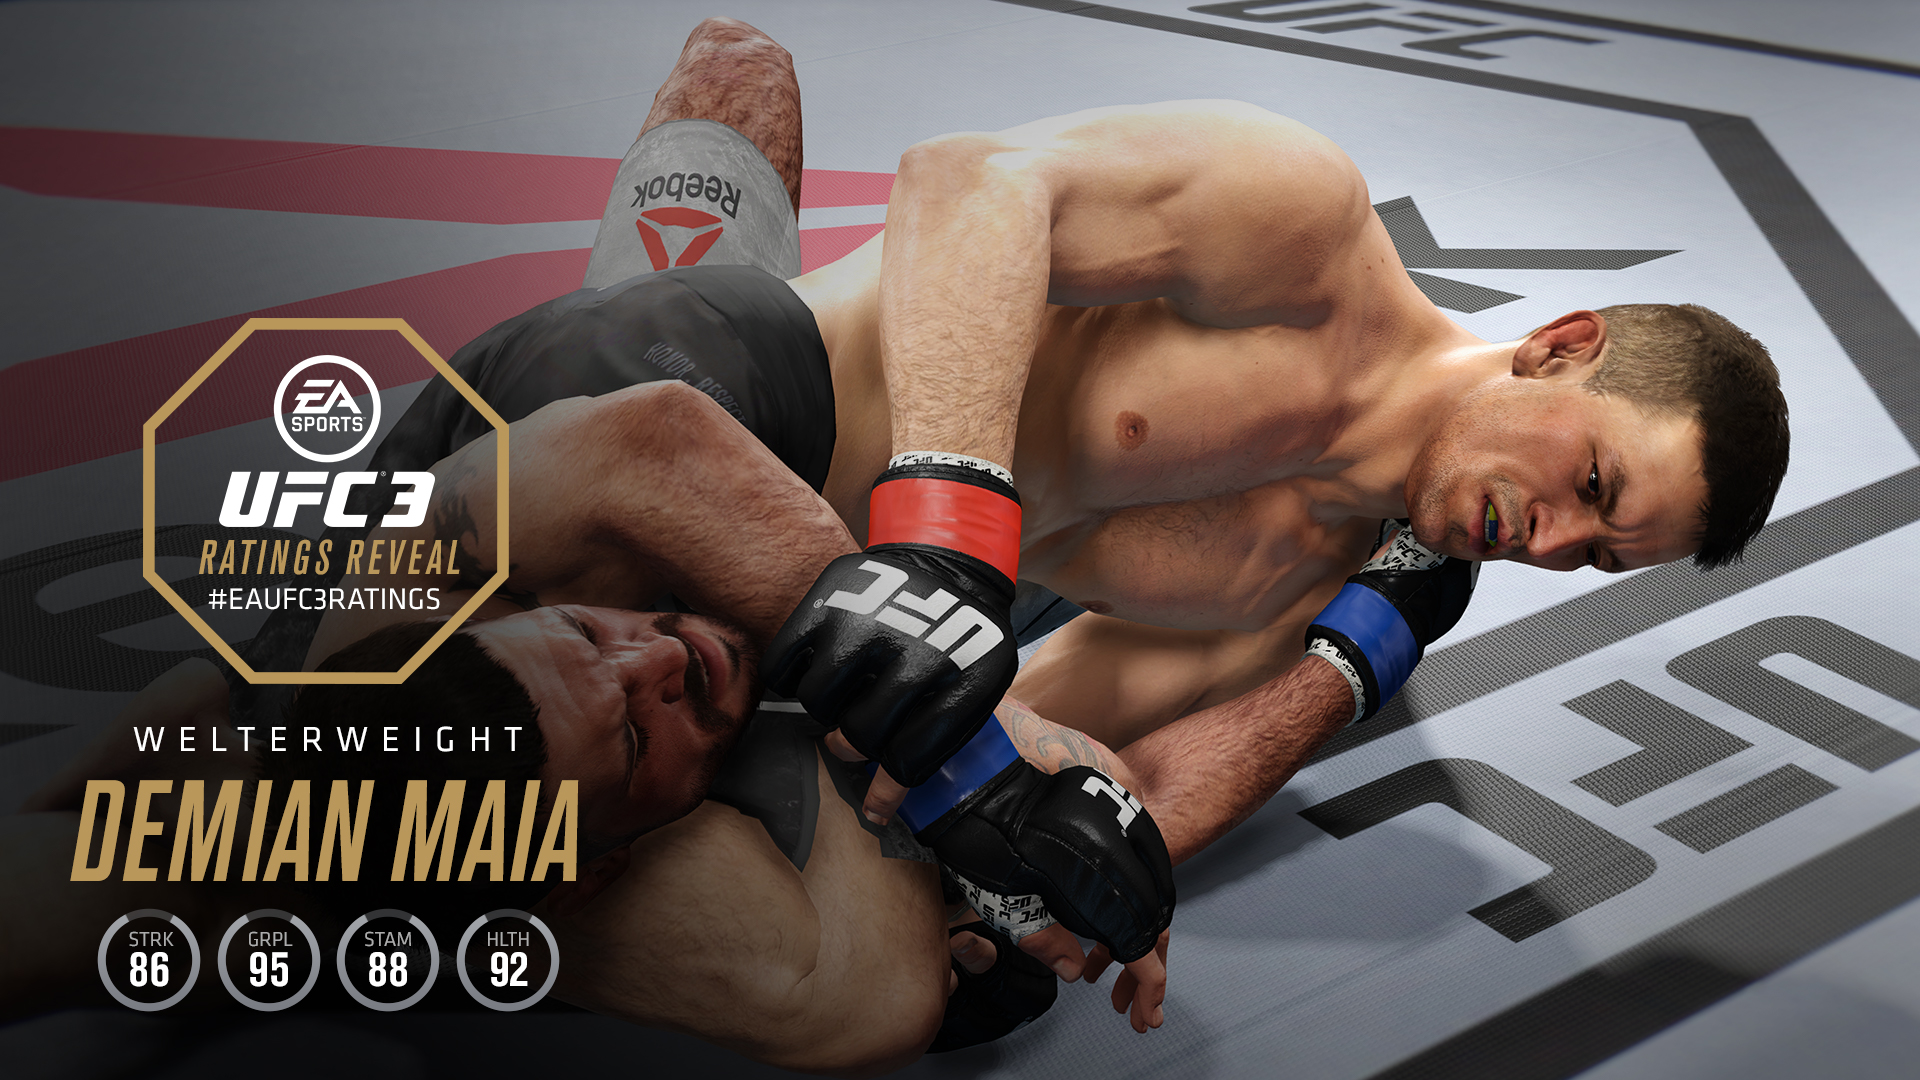 DemianMaia_Welterweight_1920x1080